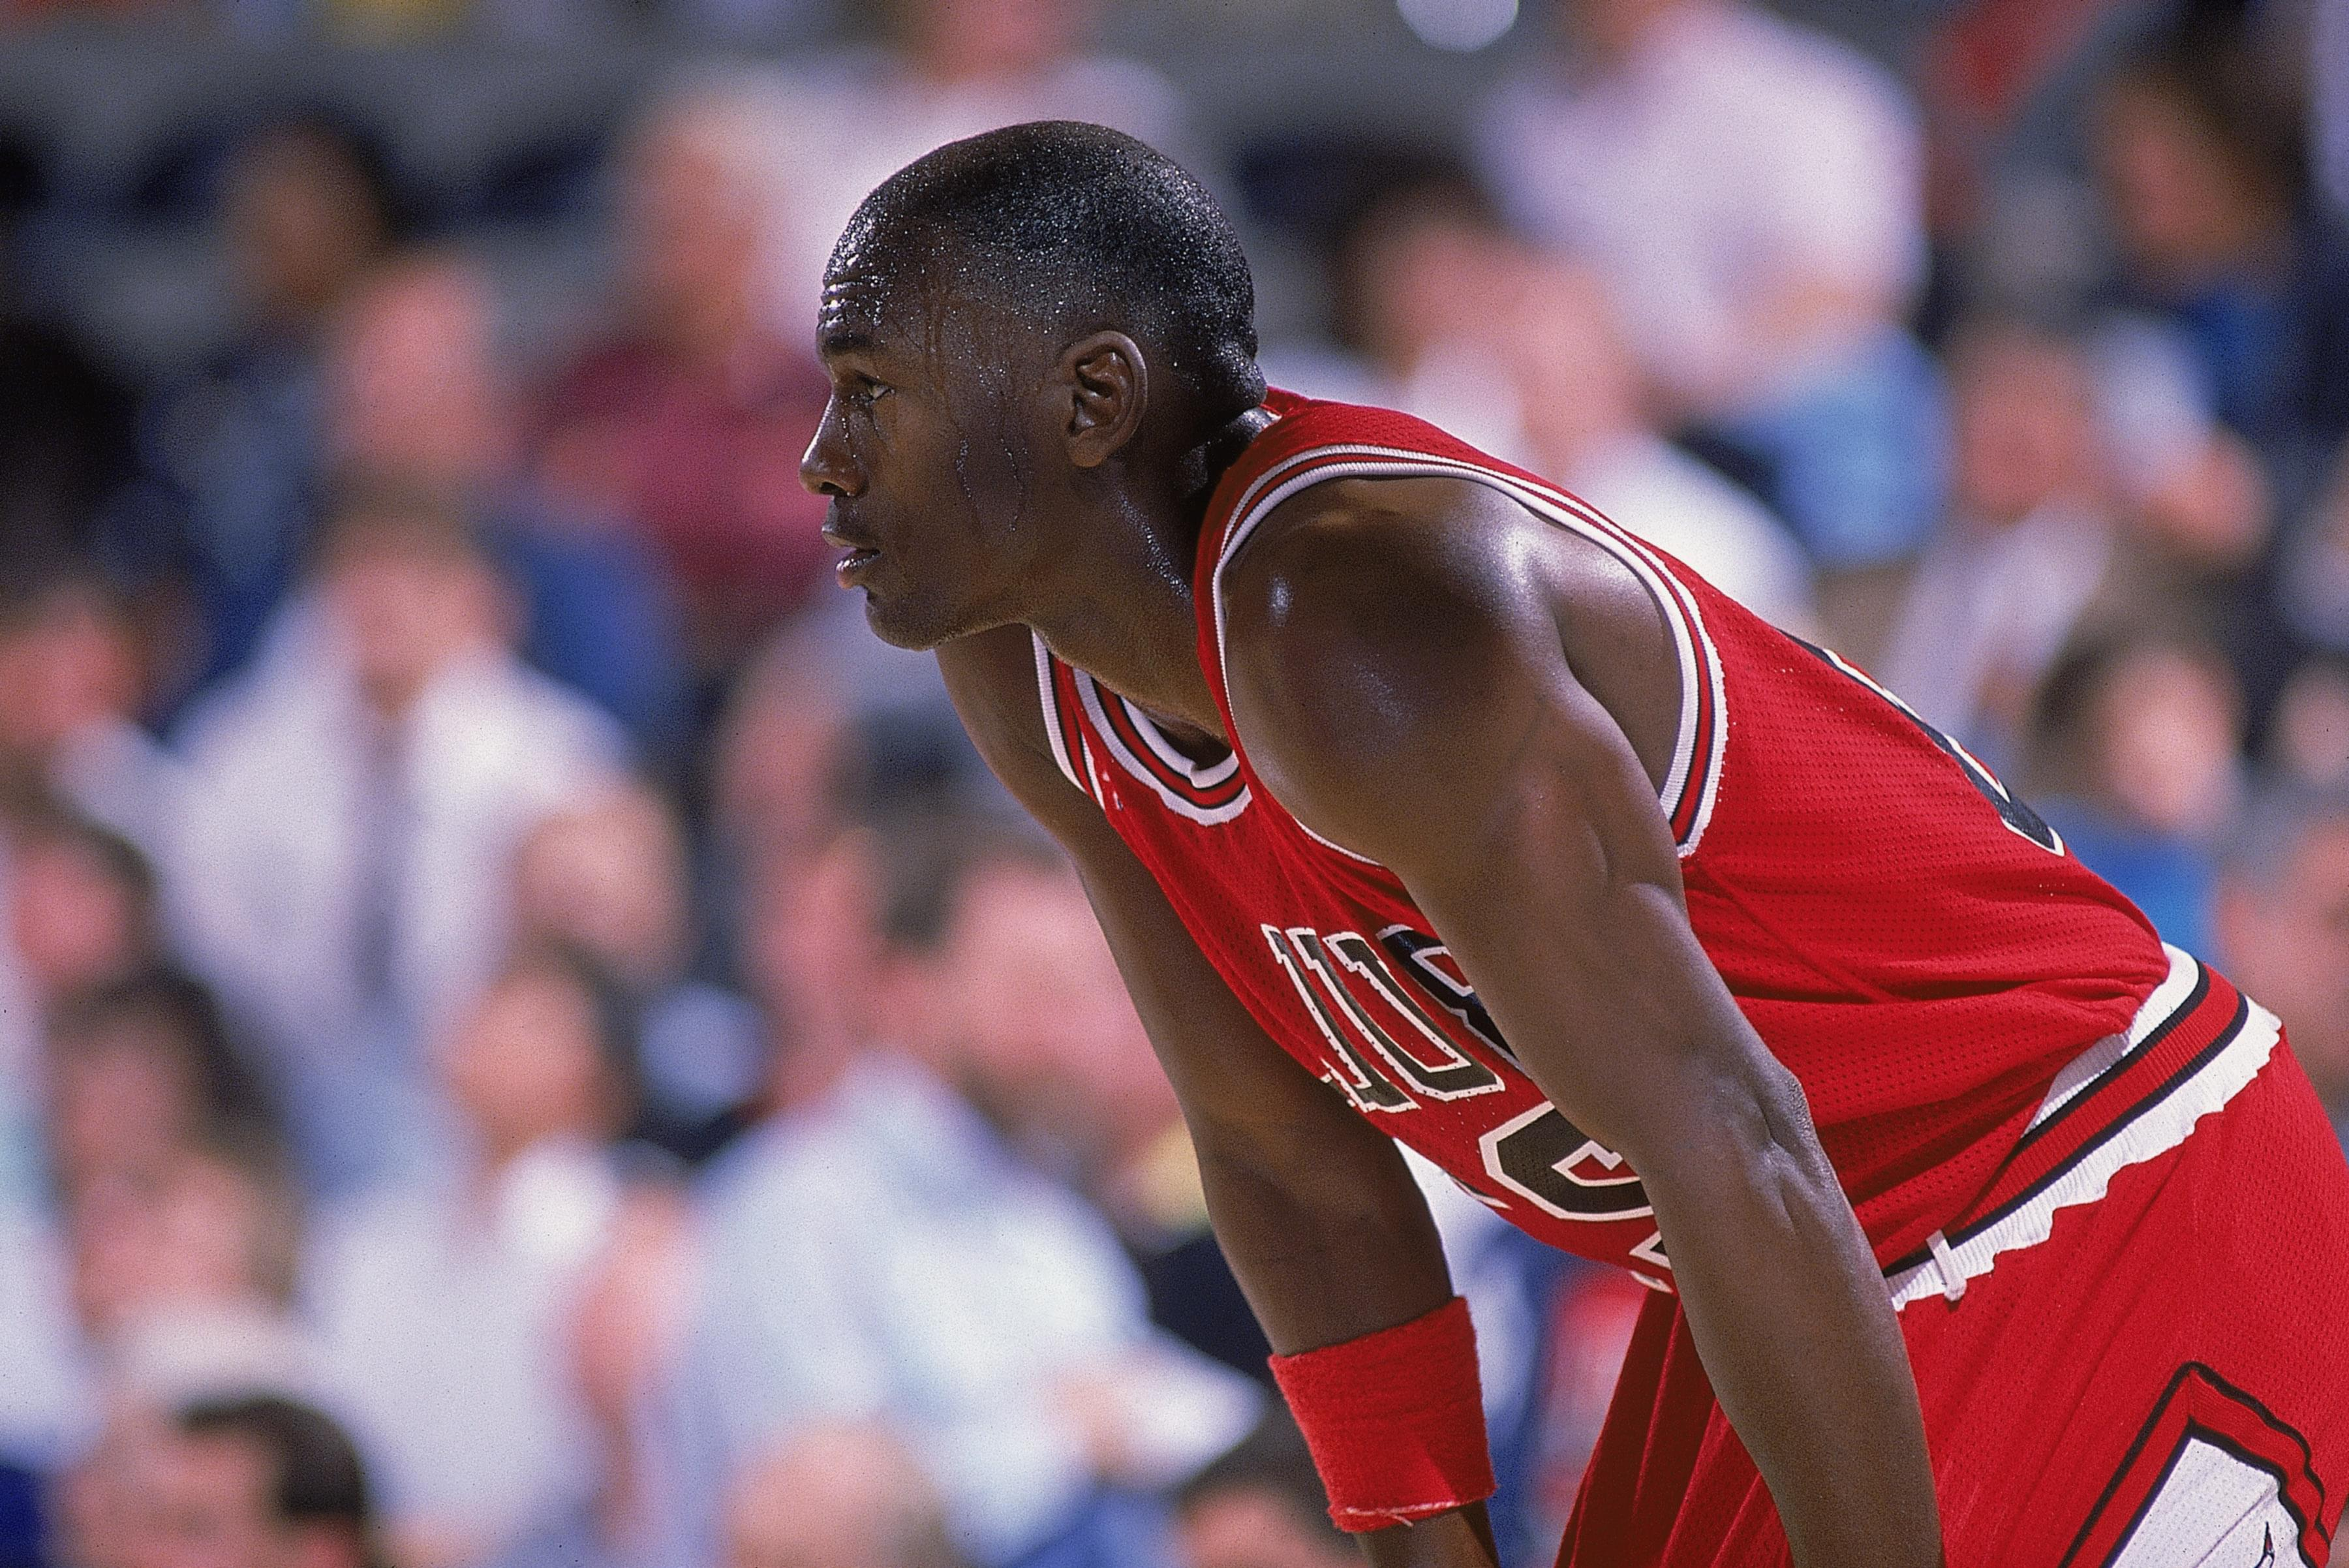 Michael Jordan Says He Does Not Want the GOAT Title